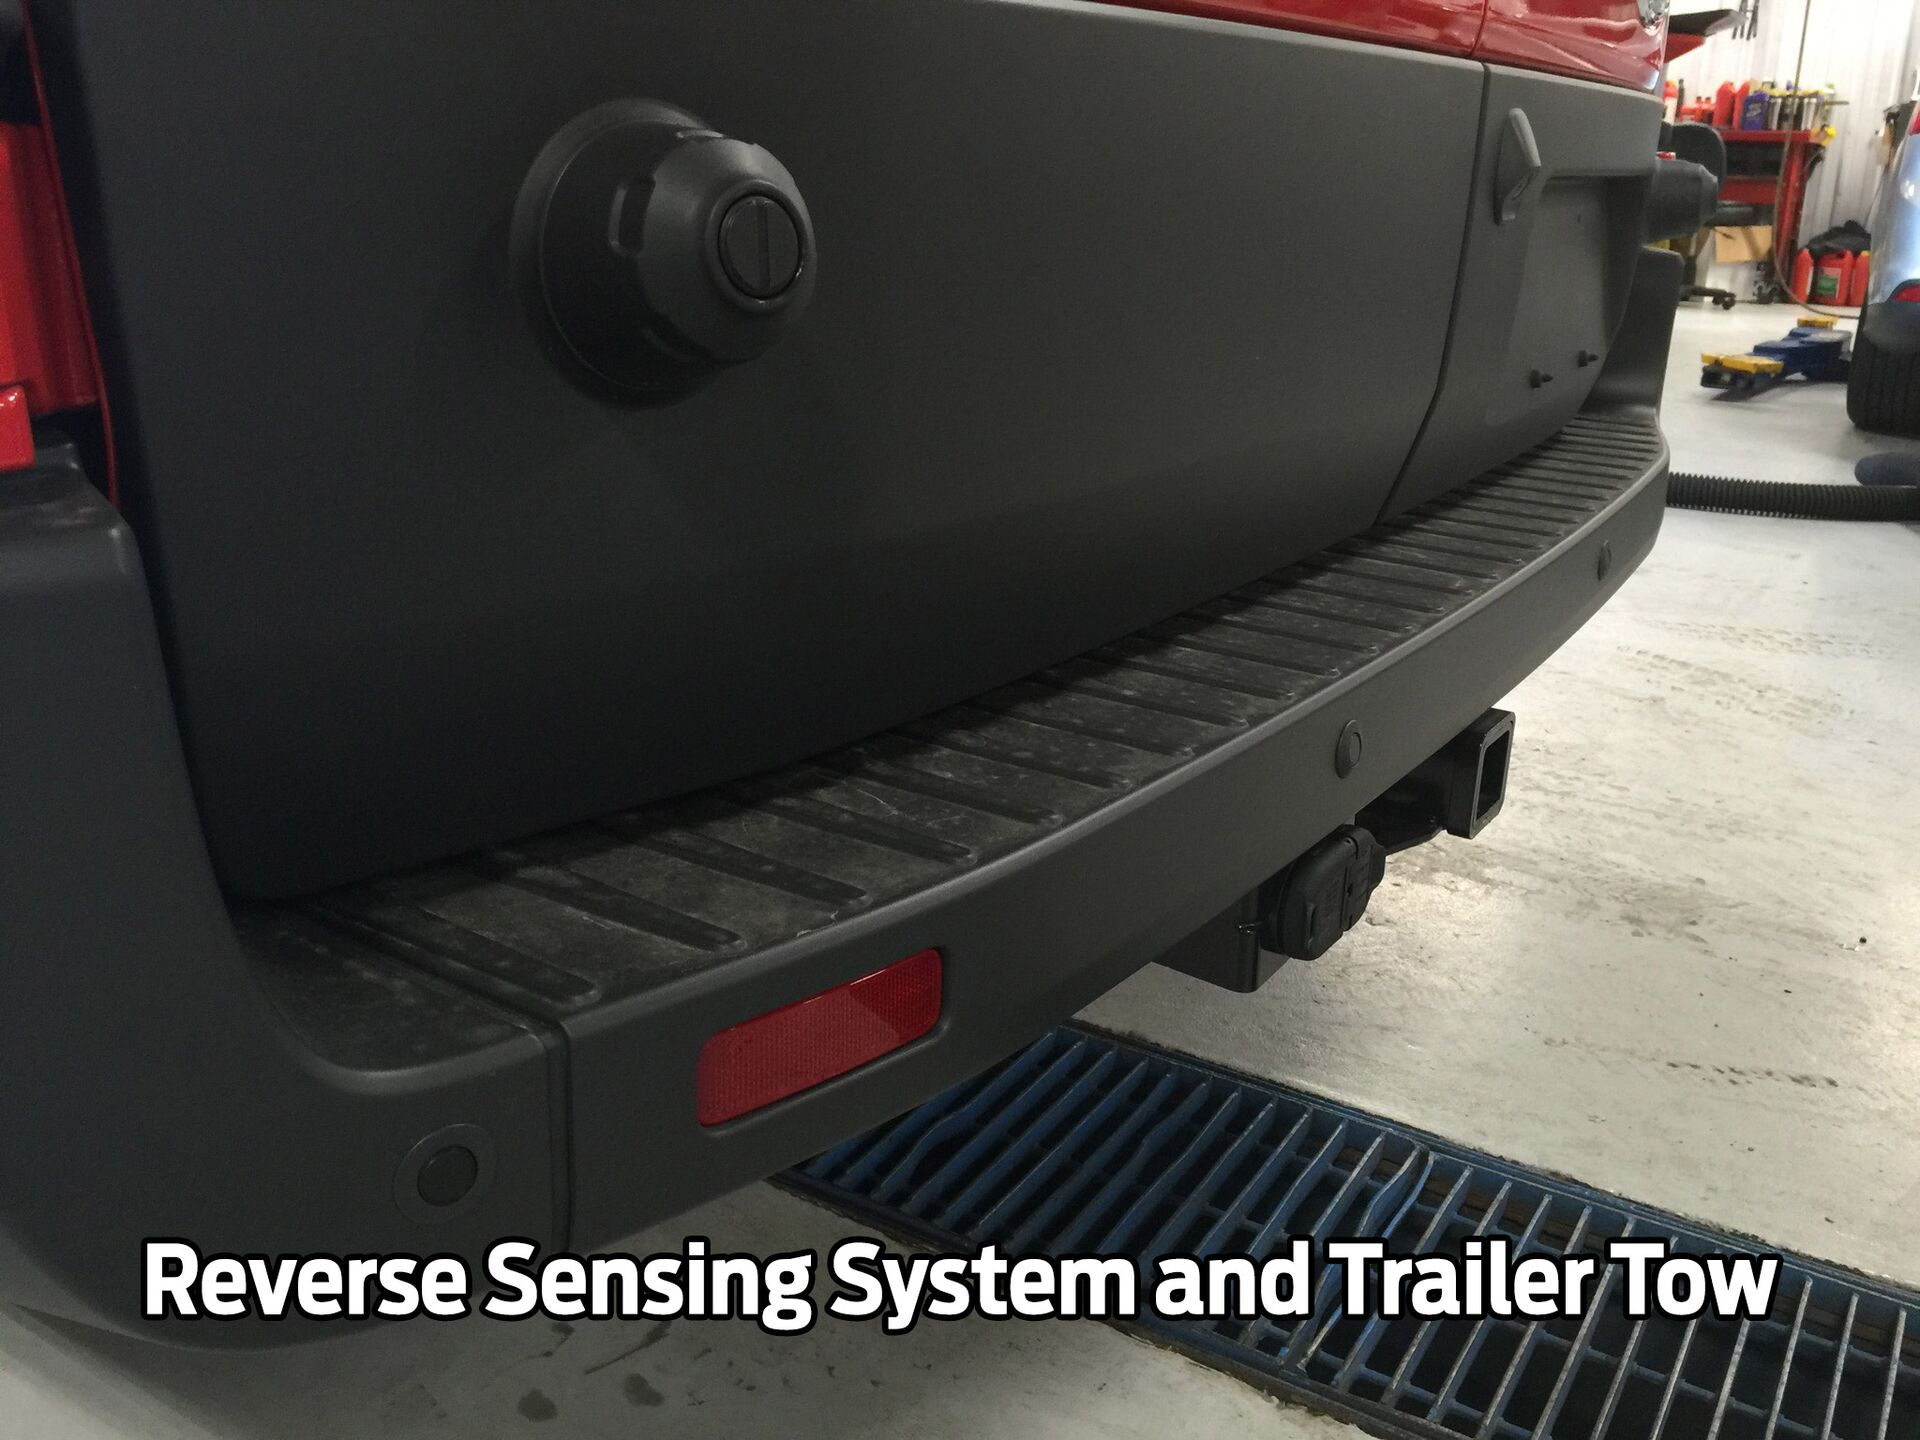 Reverse Sensing System and Trailer Tow